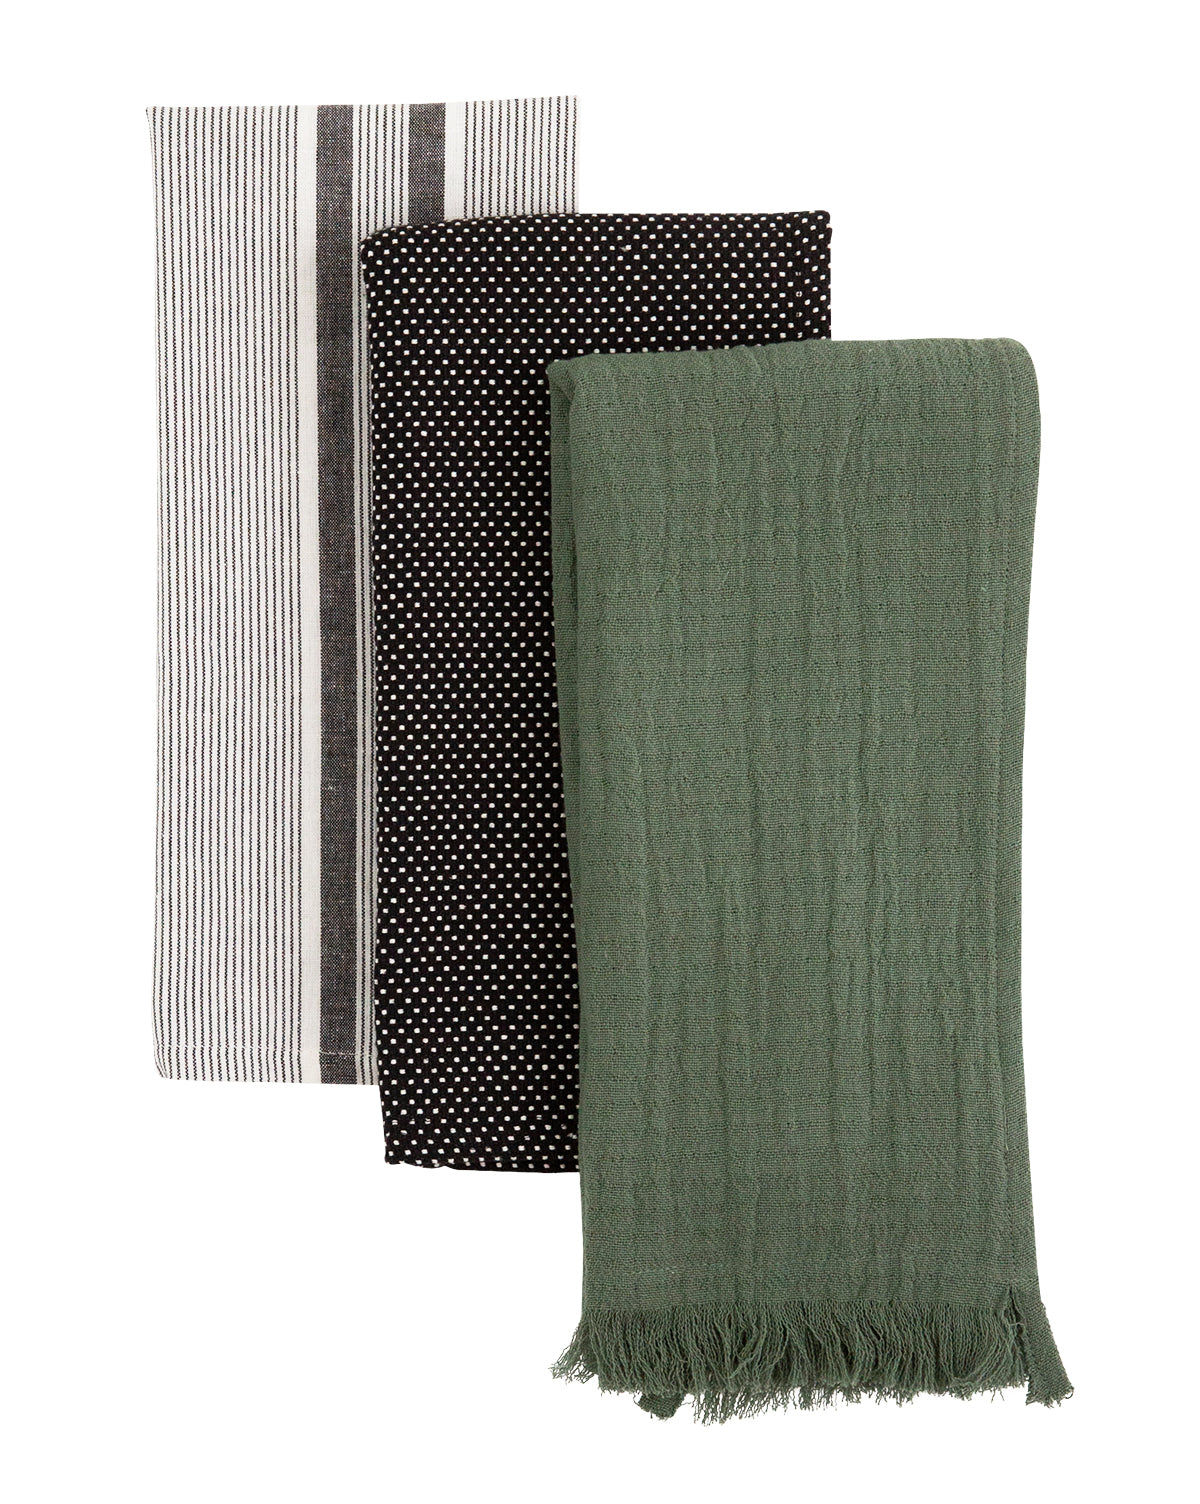 Forest Cotton Tea Towels (Set of 3)